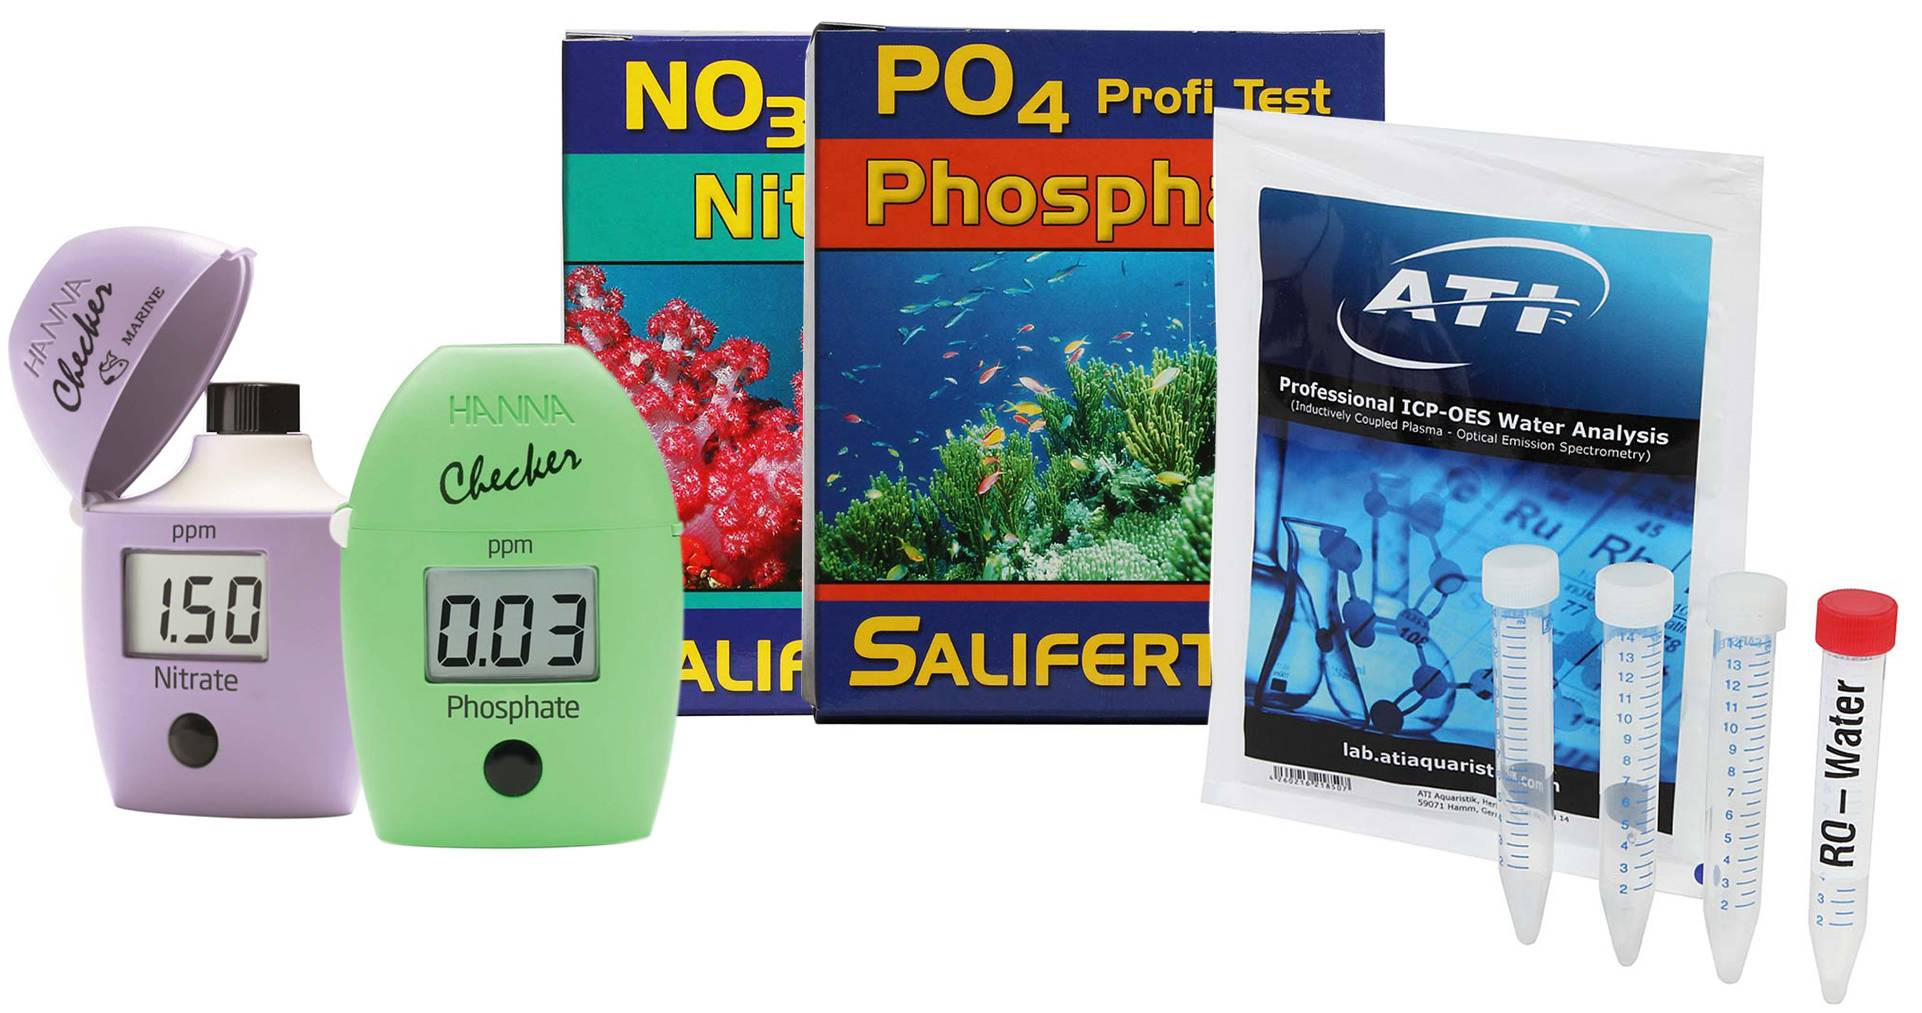 test kits to dial in where your nutrients are before considering using liquid carbon dosing